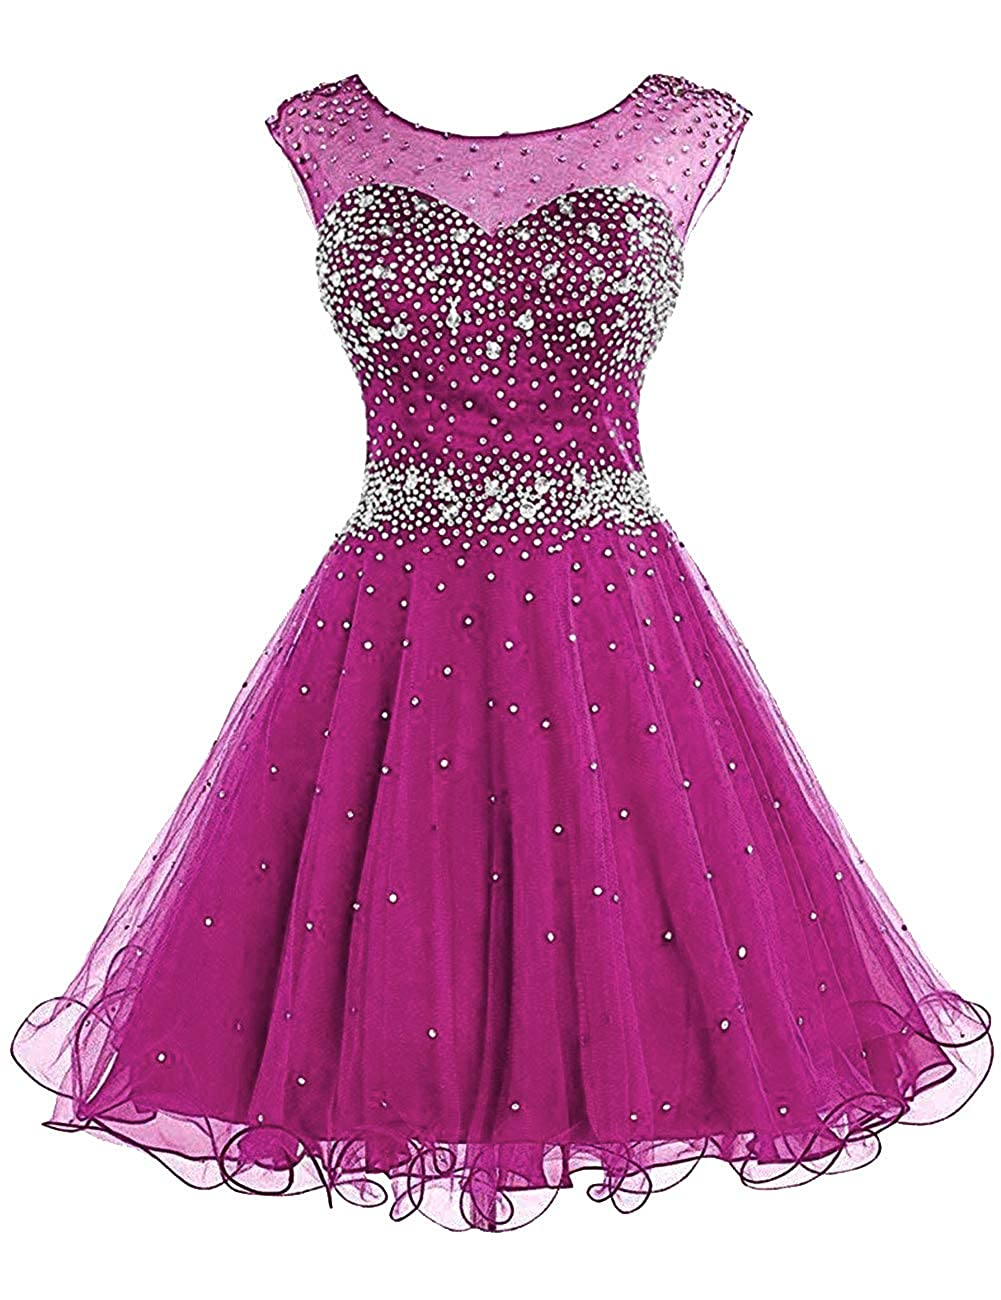 Dark pink H.S.D Homecoming Dresses Prom Party Dresses Short Cocktail Dress Beads Graduation Gown